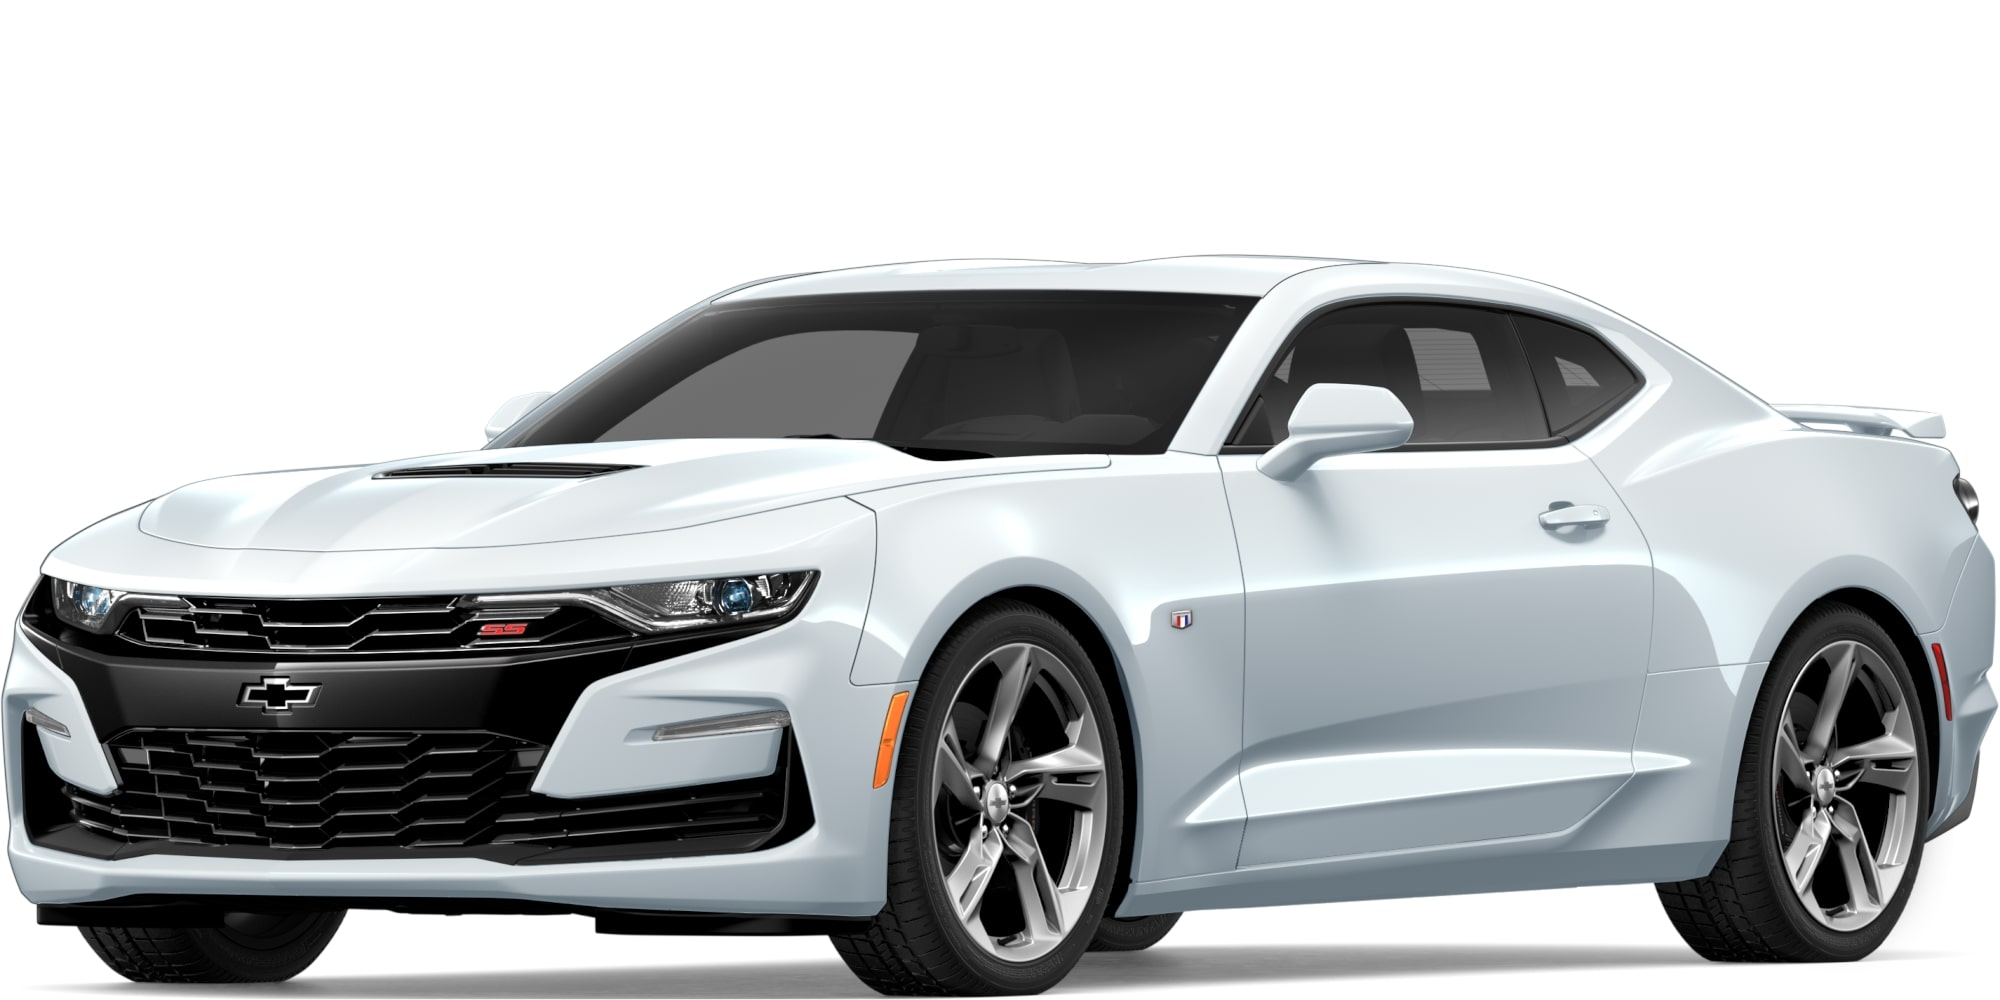 The New 2019 Camaro Sports Car Coupe & Convertible 2014 F350 Wiring Diagram  2014 Camaro Rs1 Wiring Diagram